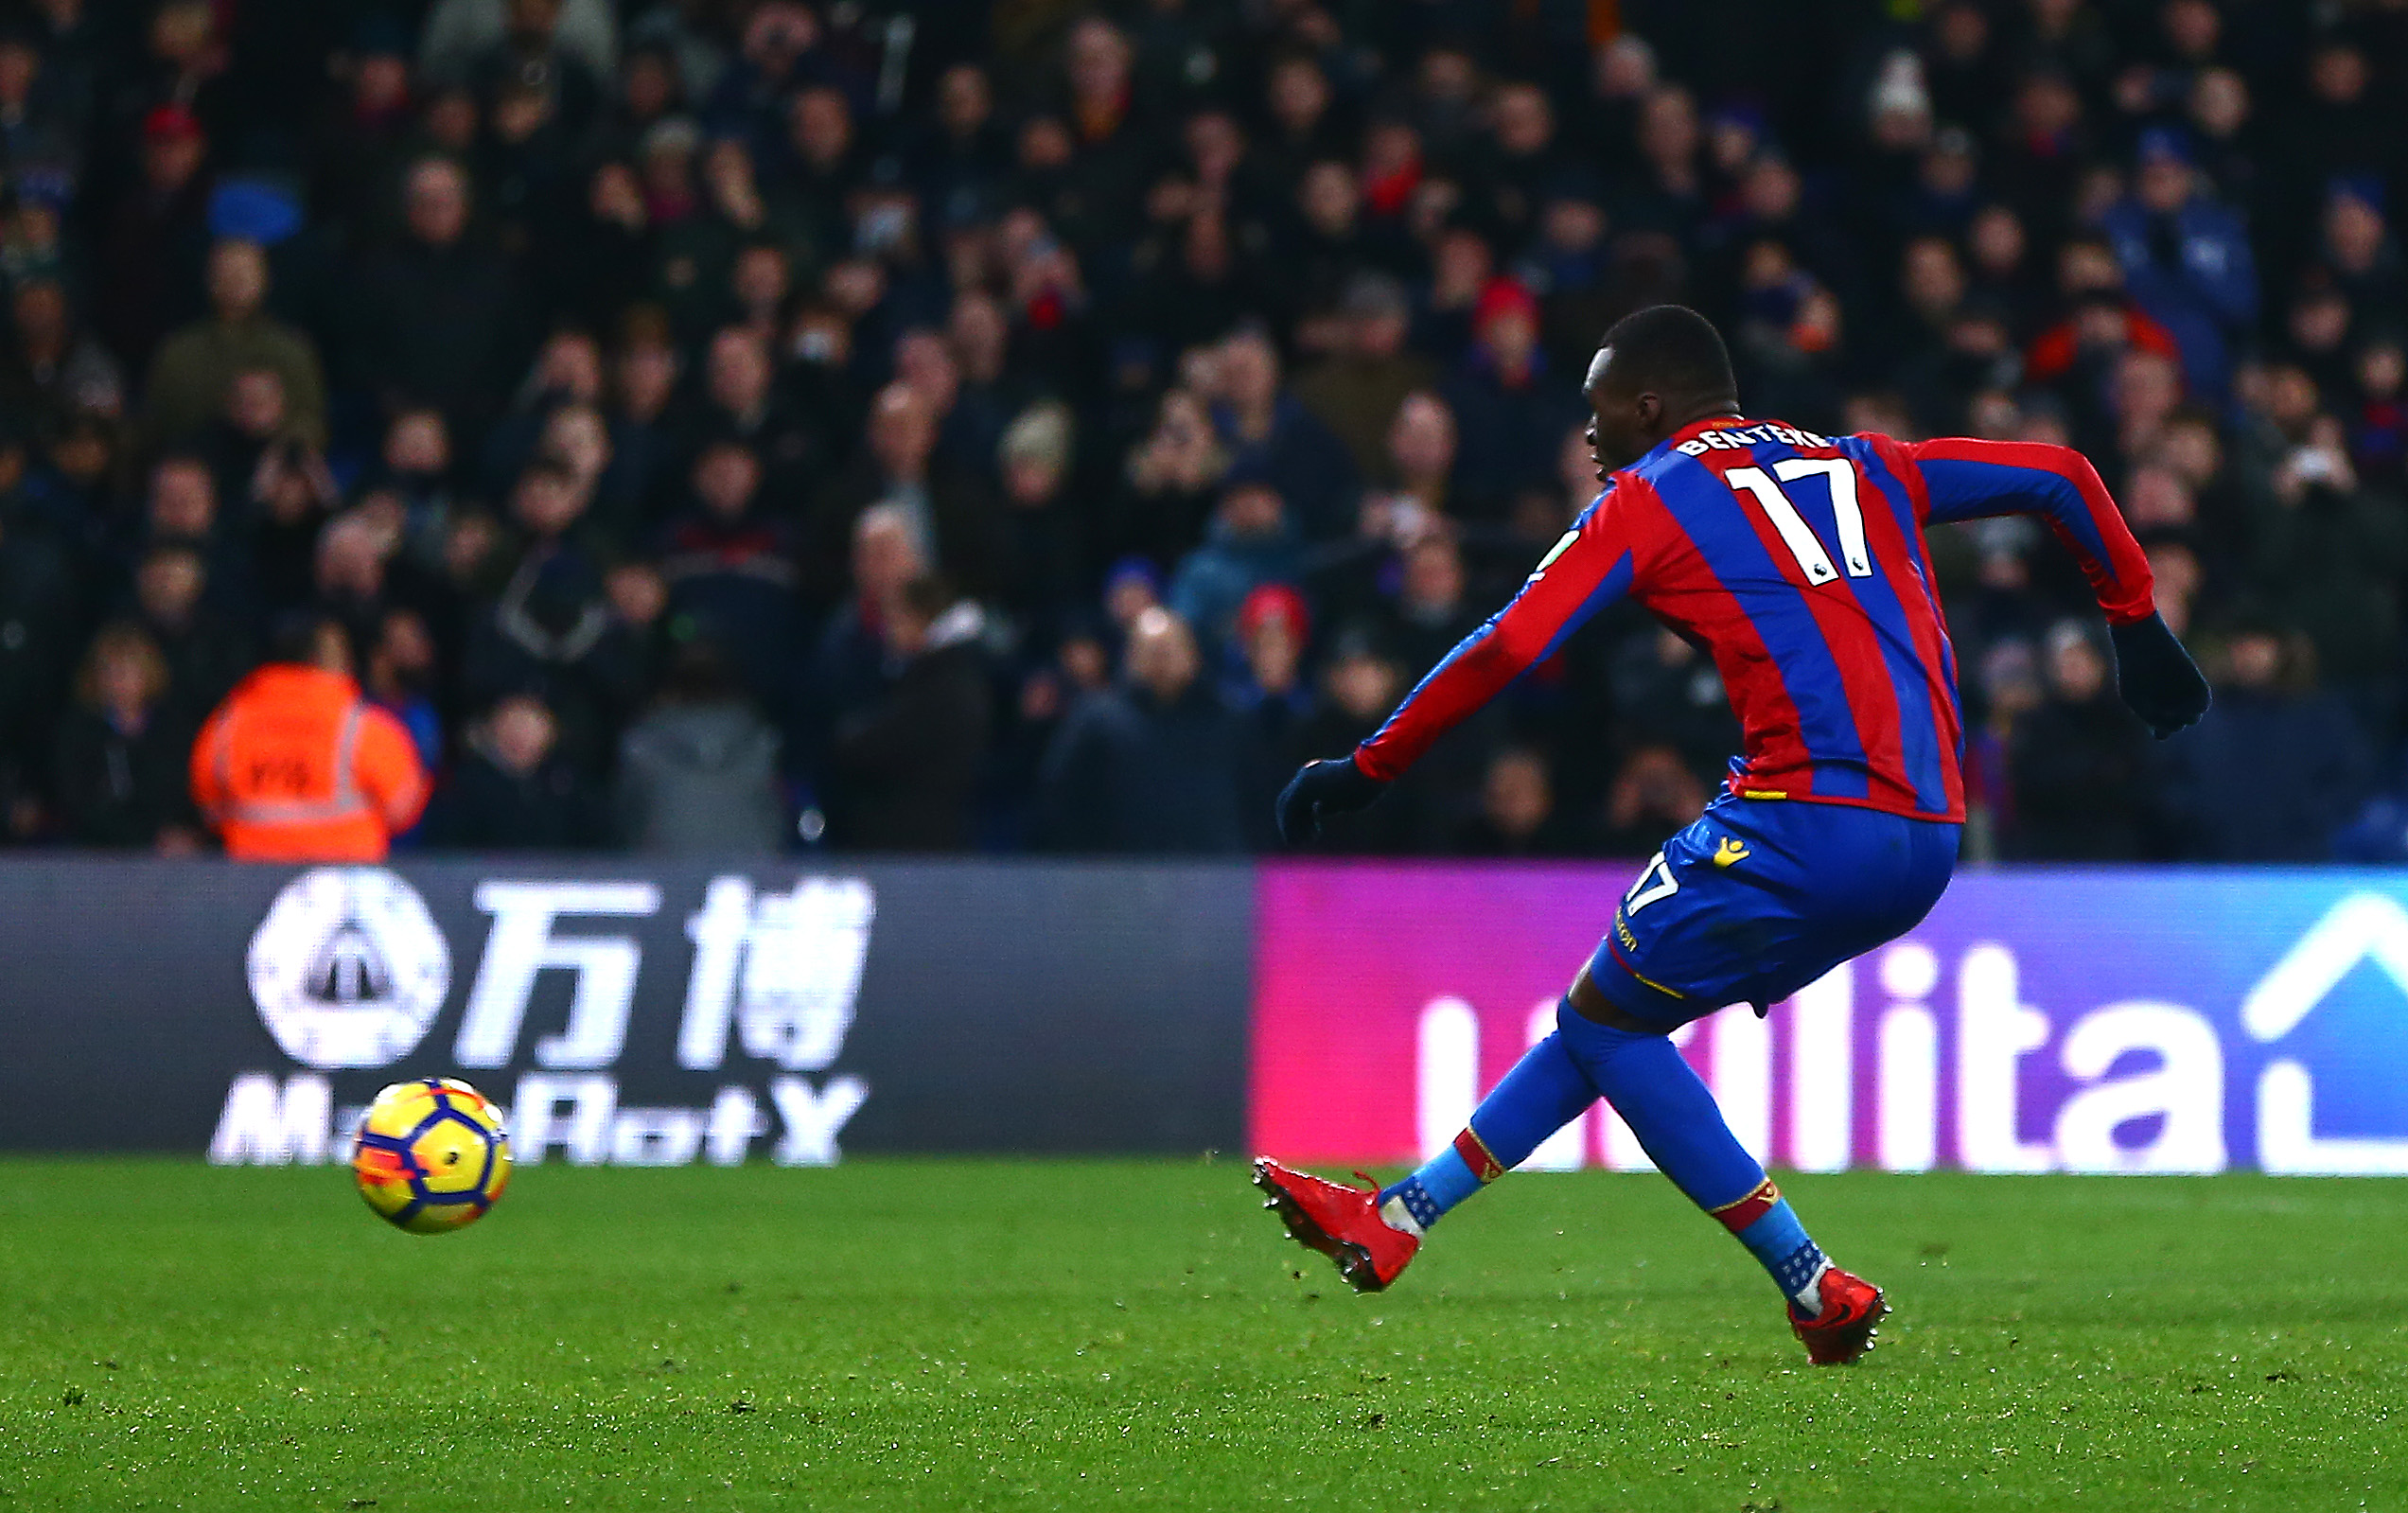 Crystal Palace boss Hodgson confident Cabaye will stay